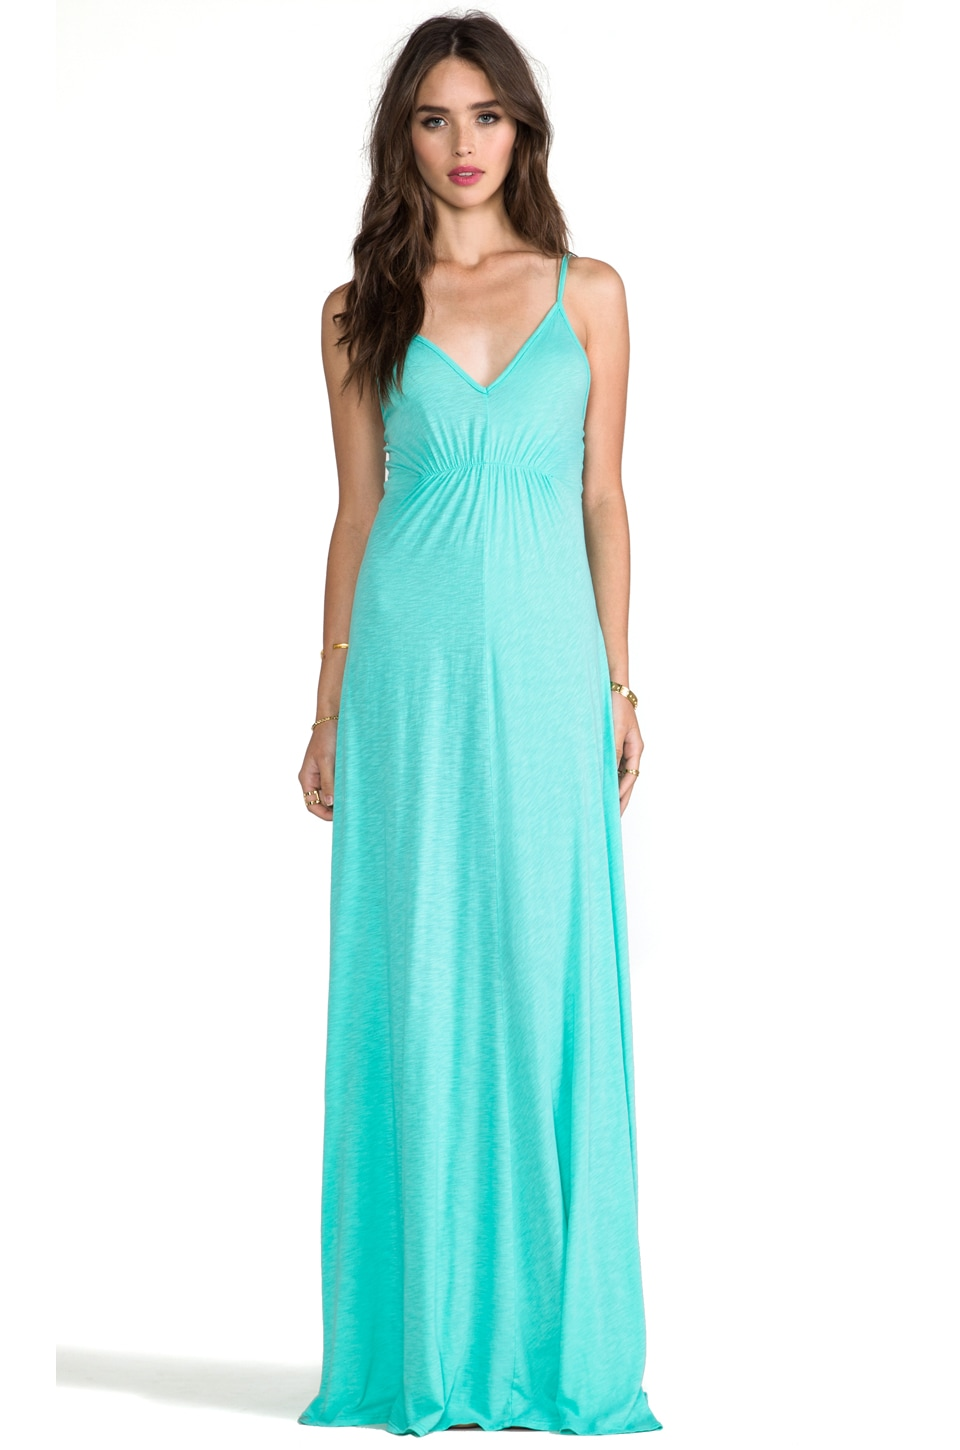 LA Made Cami Maxi Dress in Mantis